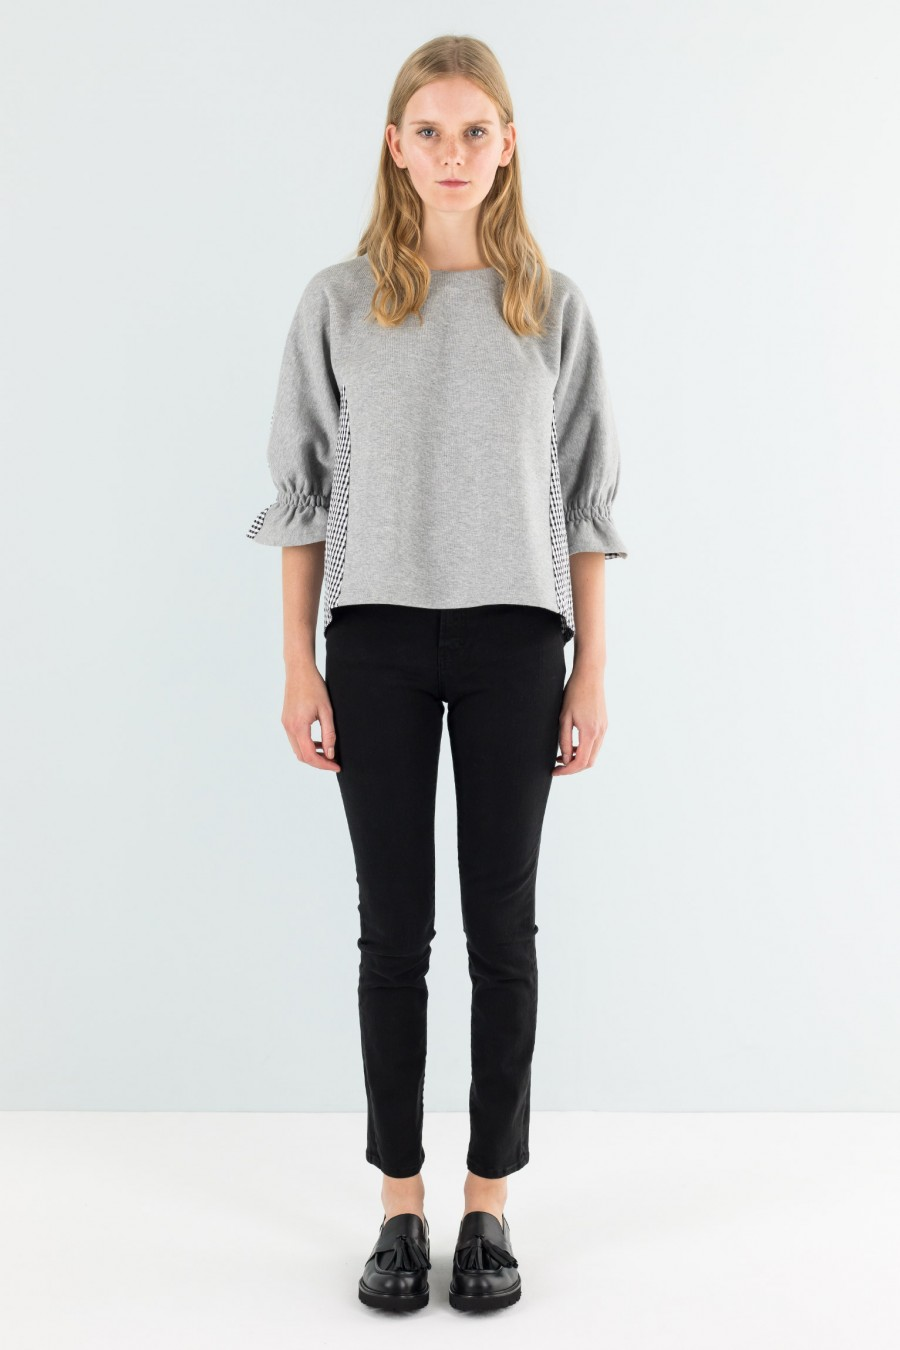 Sweater with ruffled sleeves